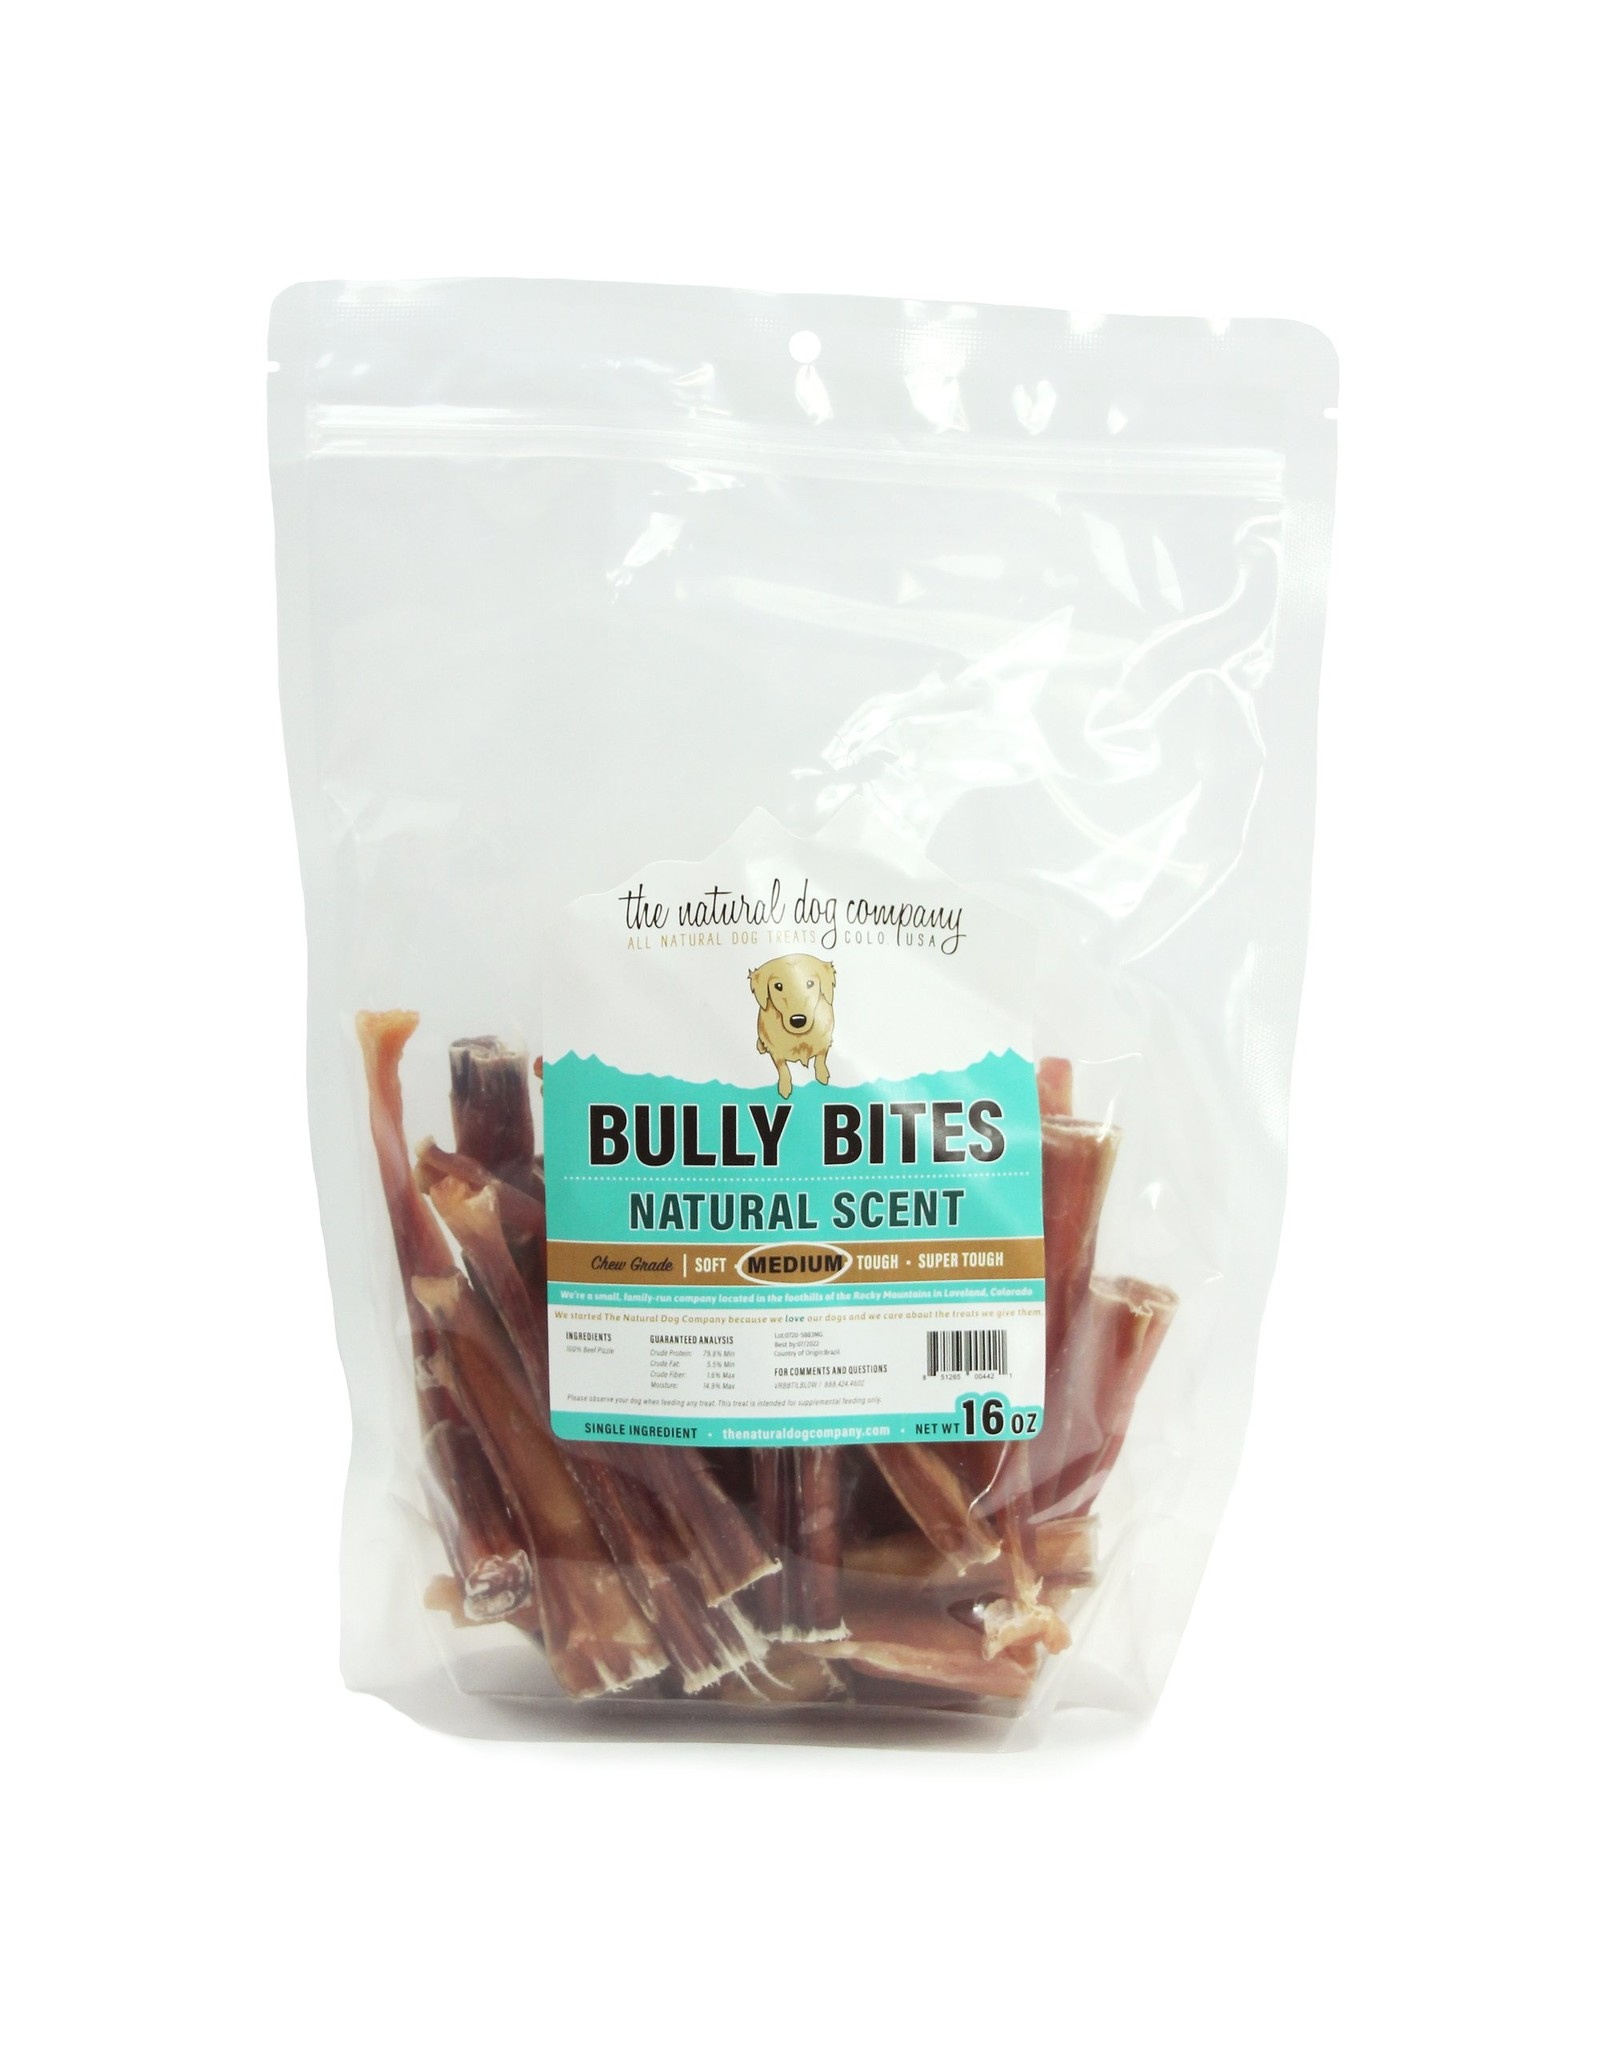 Natural Scent Bully Bites